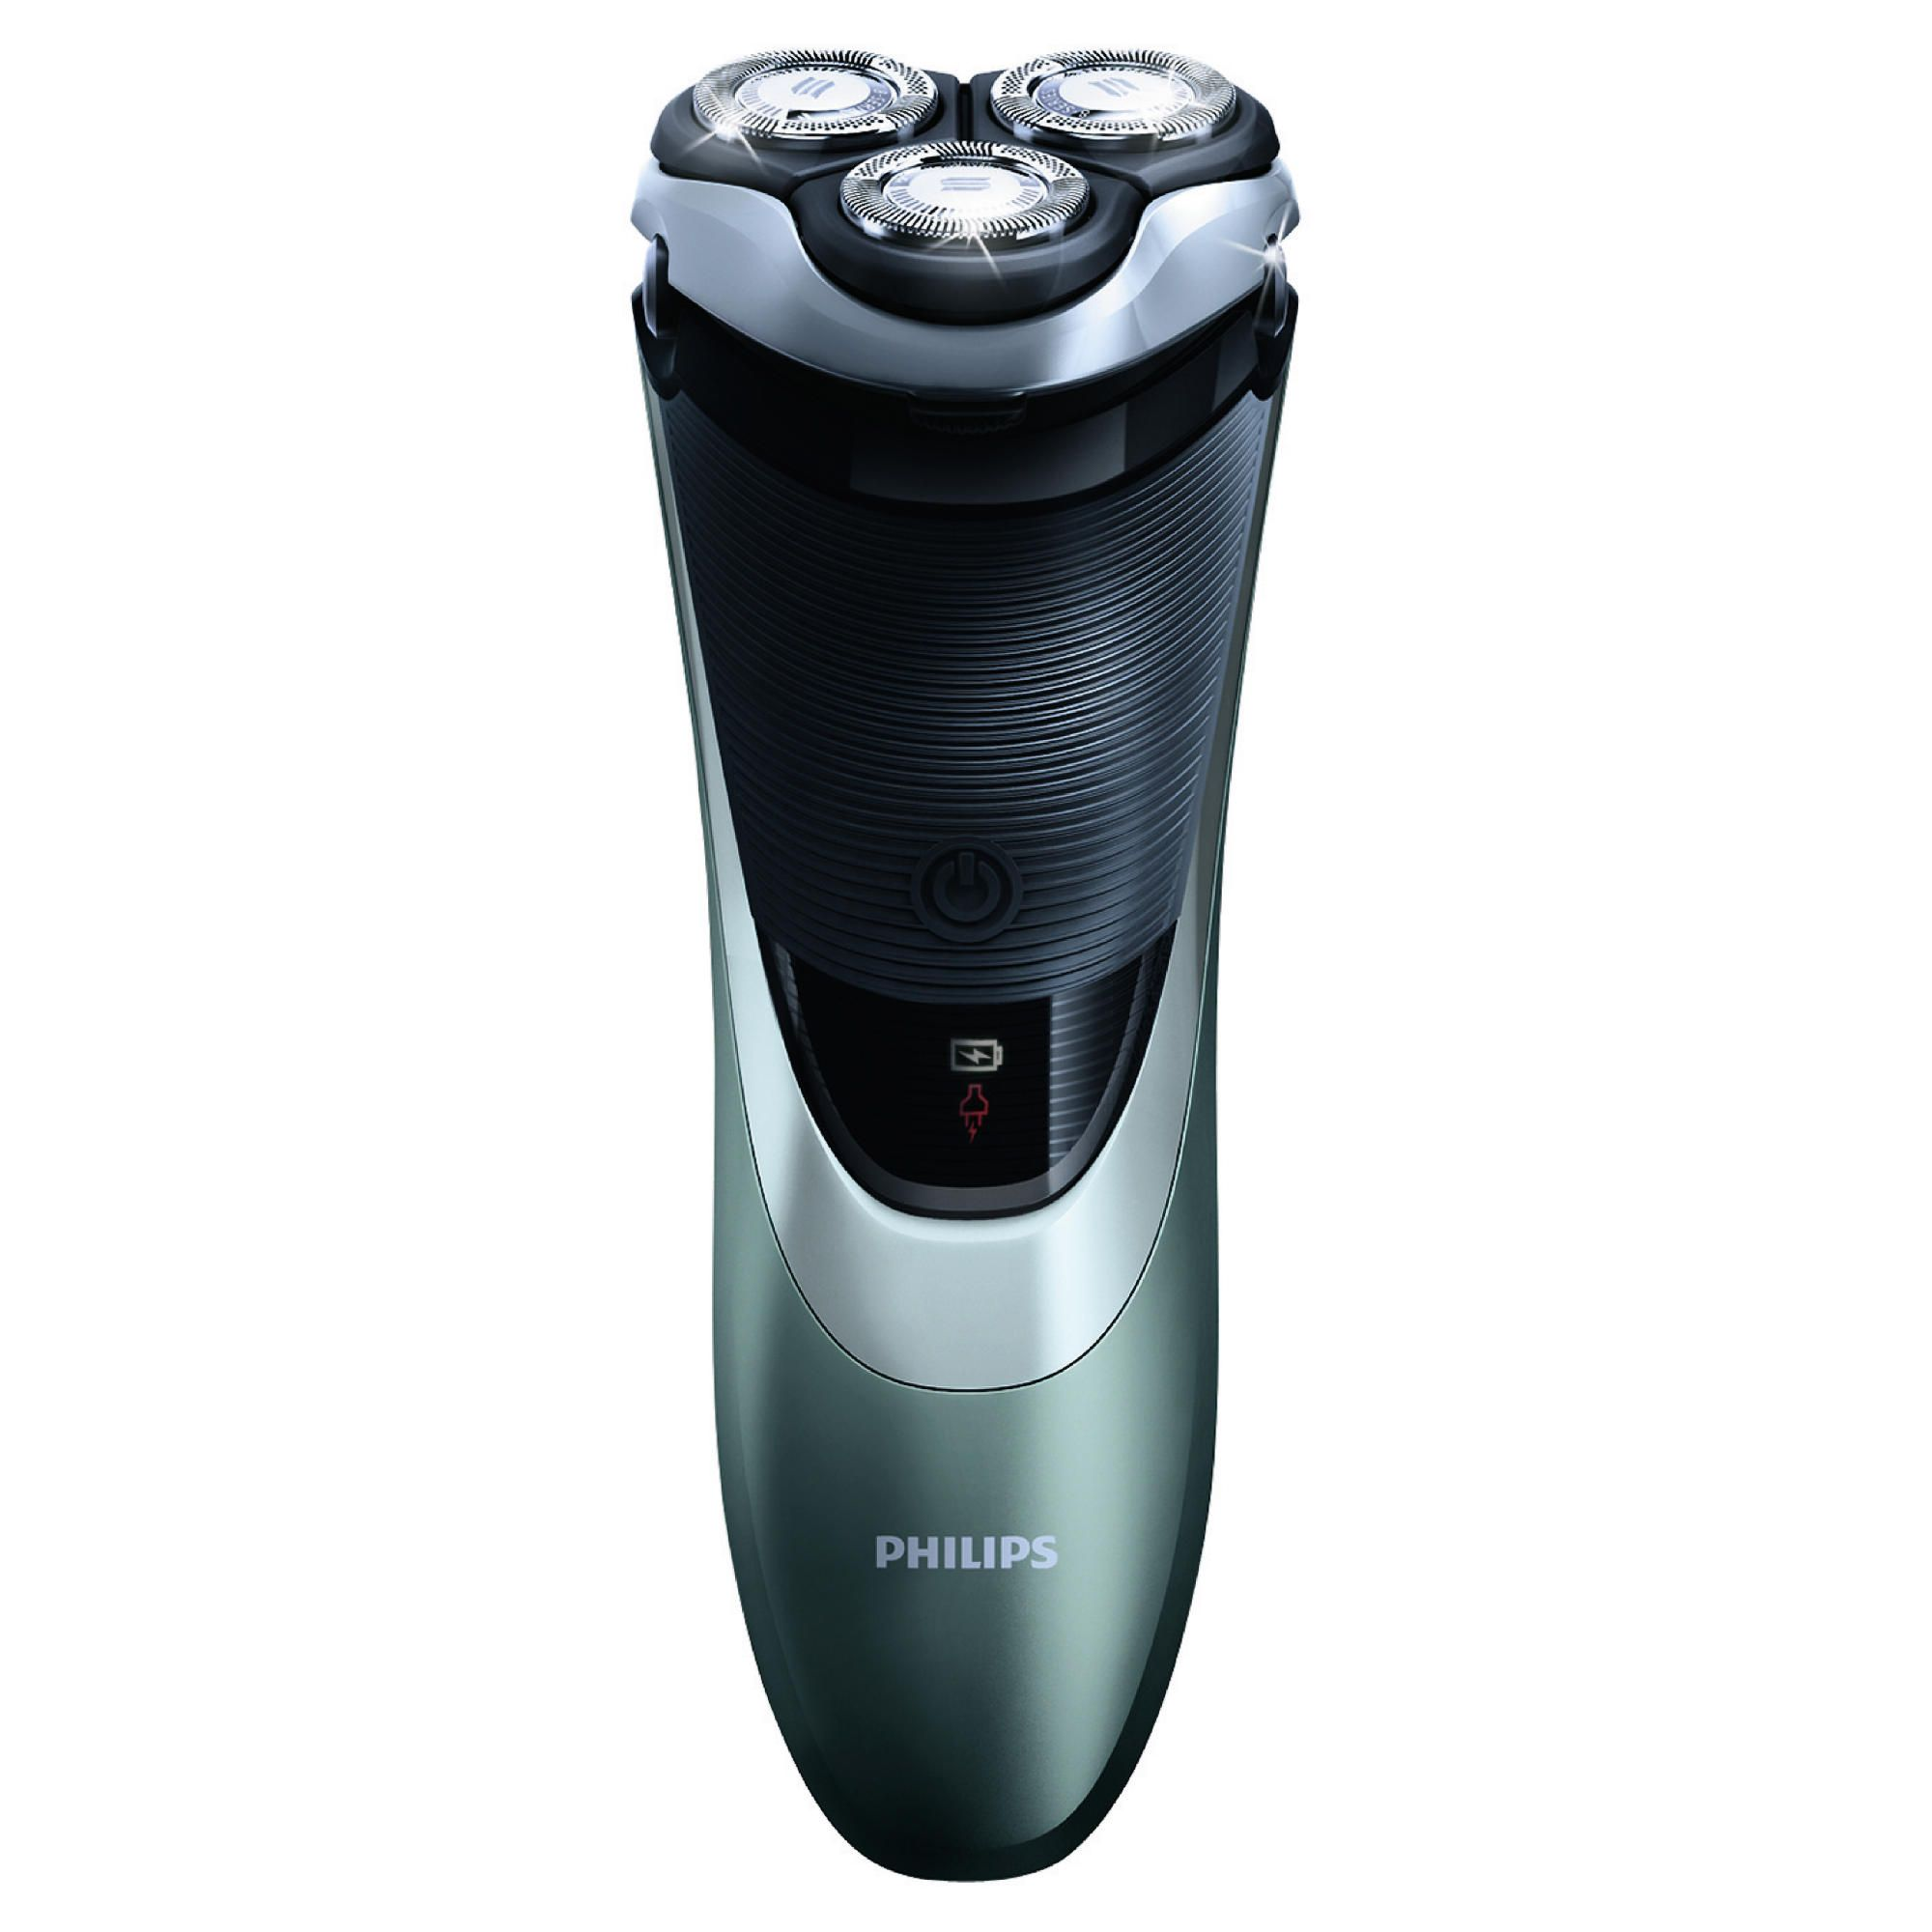 Philips PT870 Powertouch